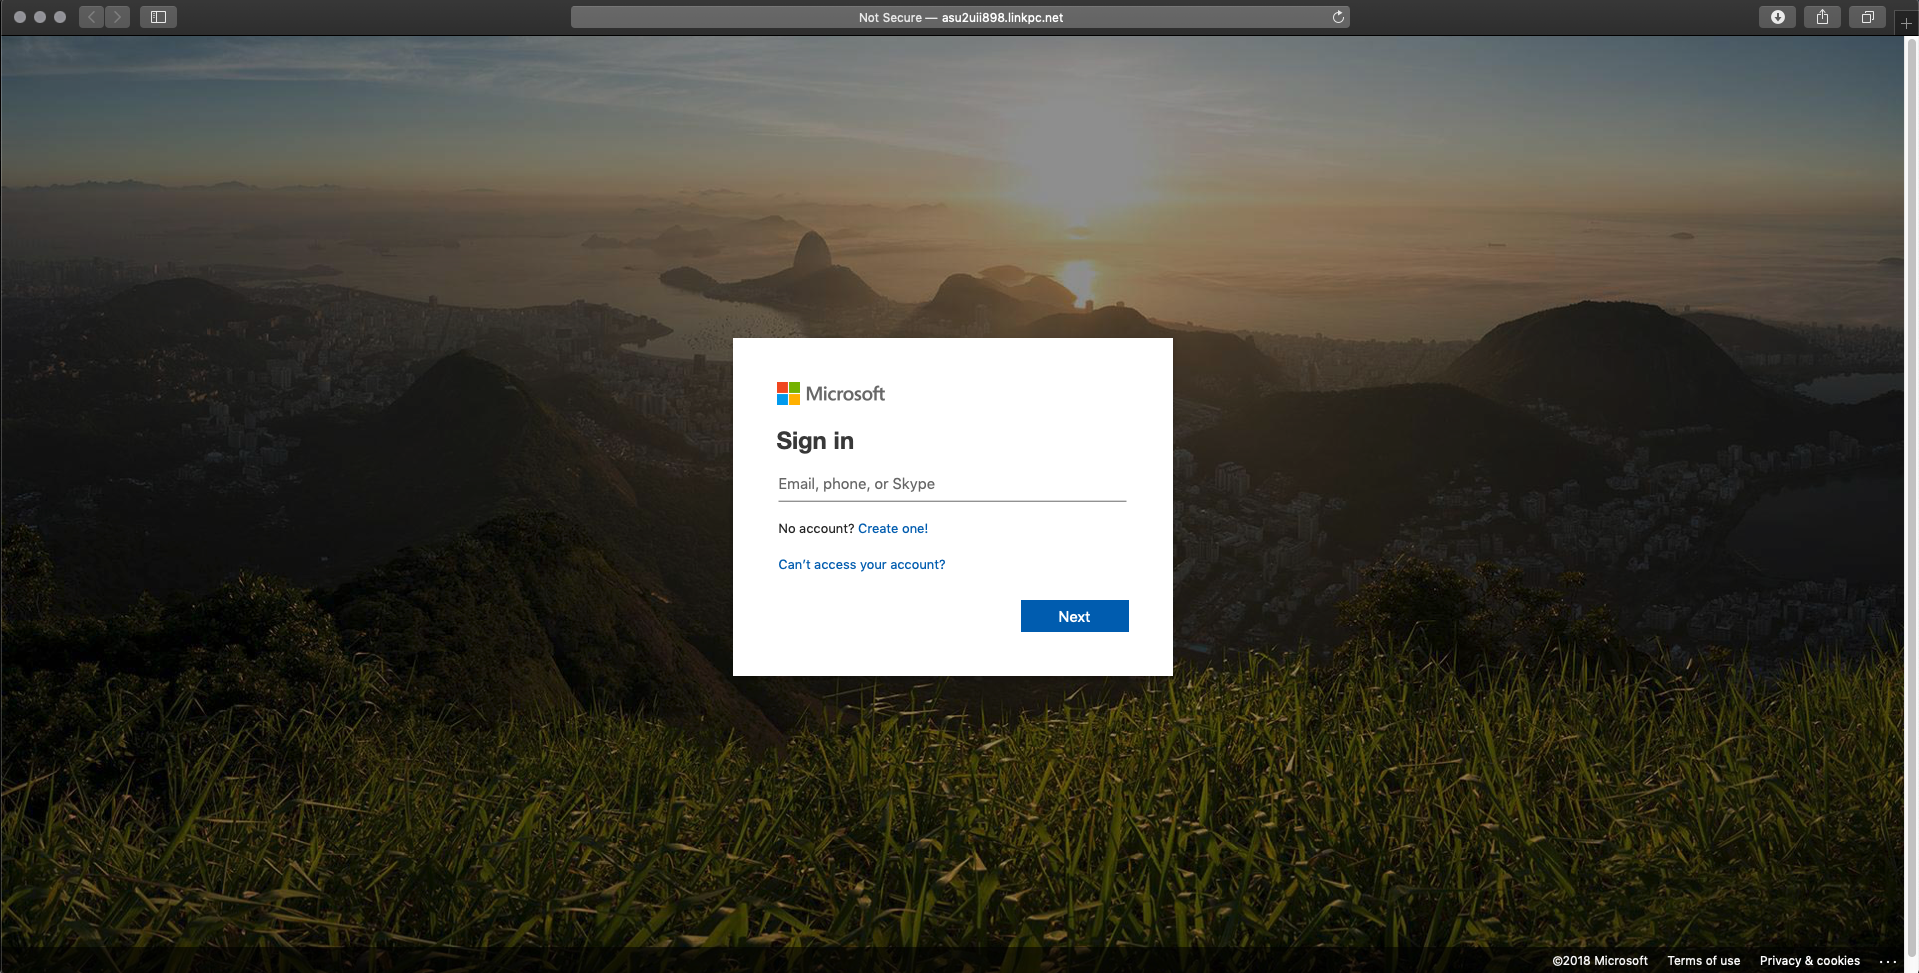 Fraudulent login page pretending to be Office 365